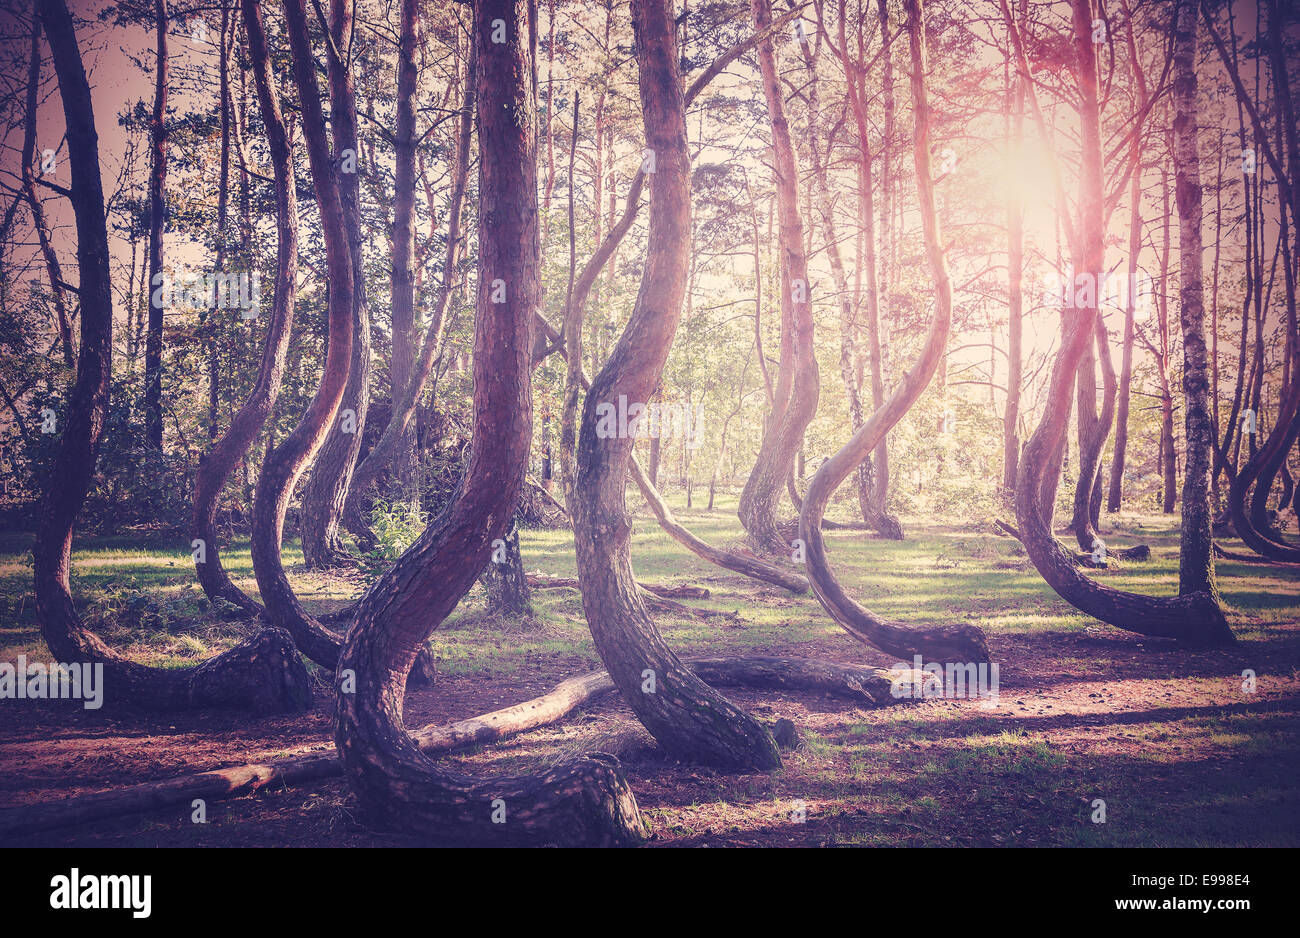 Vintage filtered picture of sunset at mysterious forest. - Stock Image